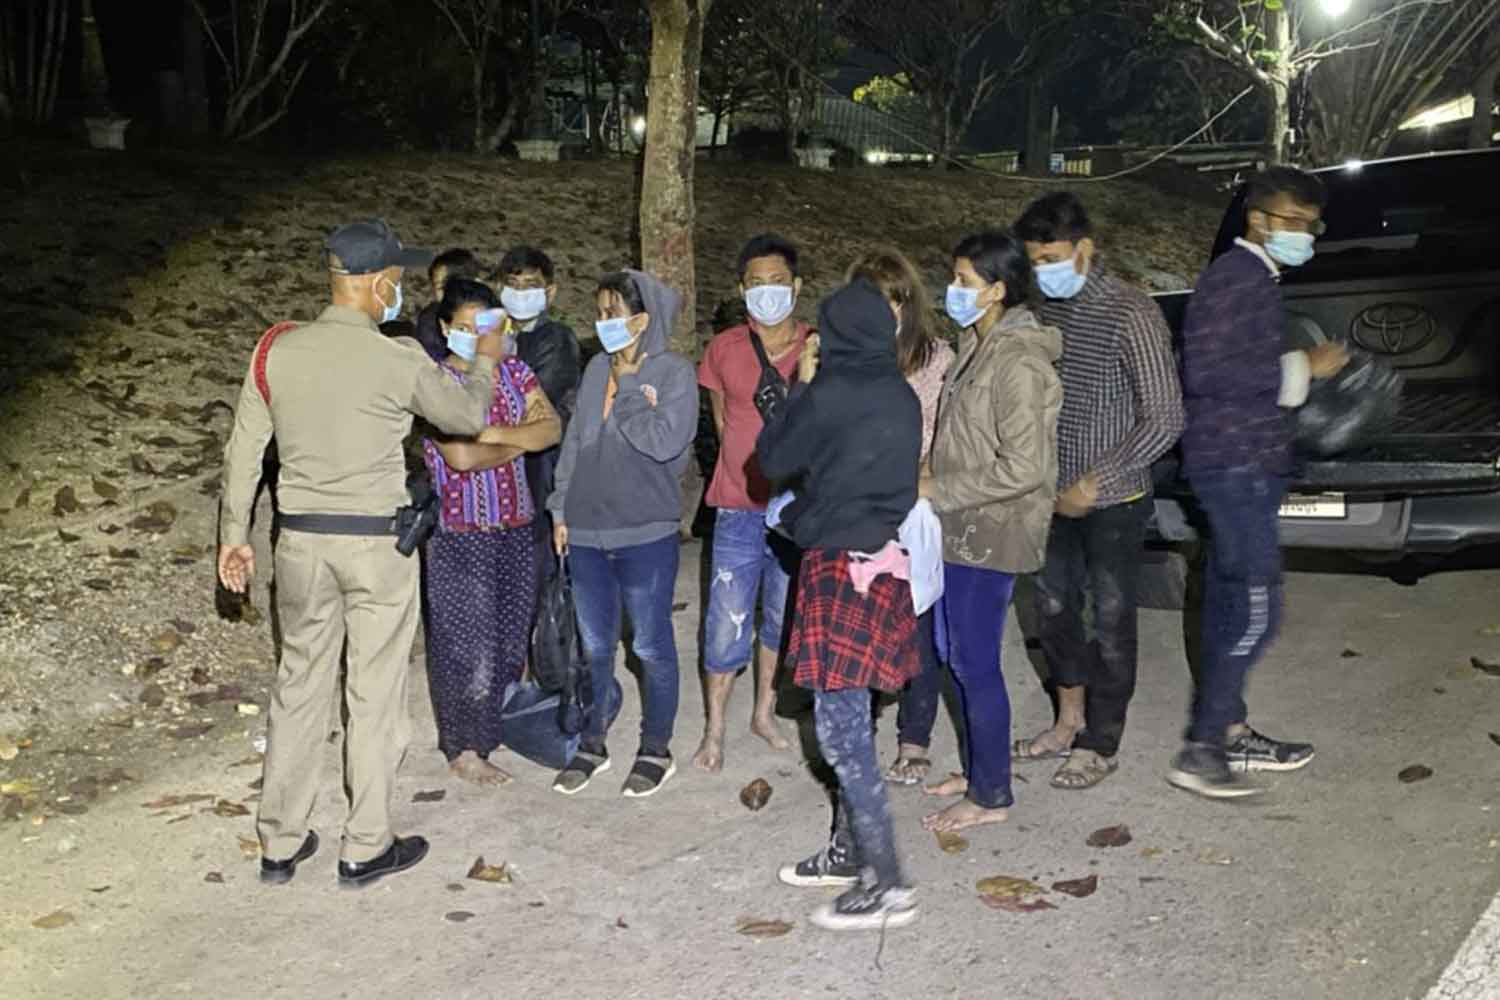 Myanmar job-seekers are held at the border checkpoint at Ranti bridge in Sangkhlaburi district, Kanchanaburi, early on Wednesday morning. They were arrested while hiding in a bamboo forest after crossing illegally into Thailand. (Photo: Piyarat Chongcharoen)